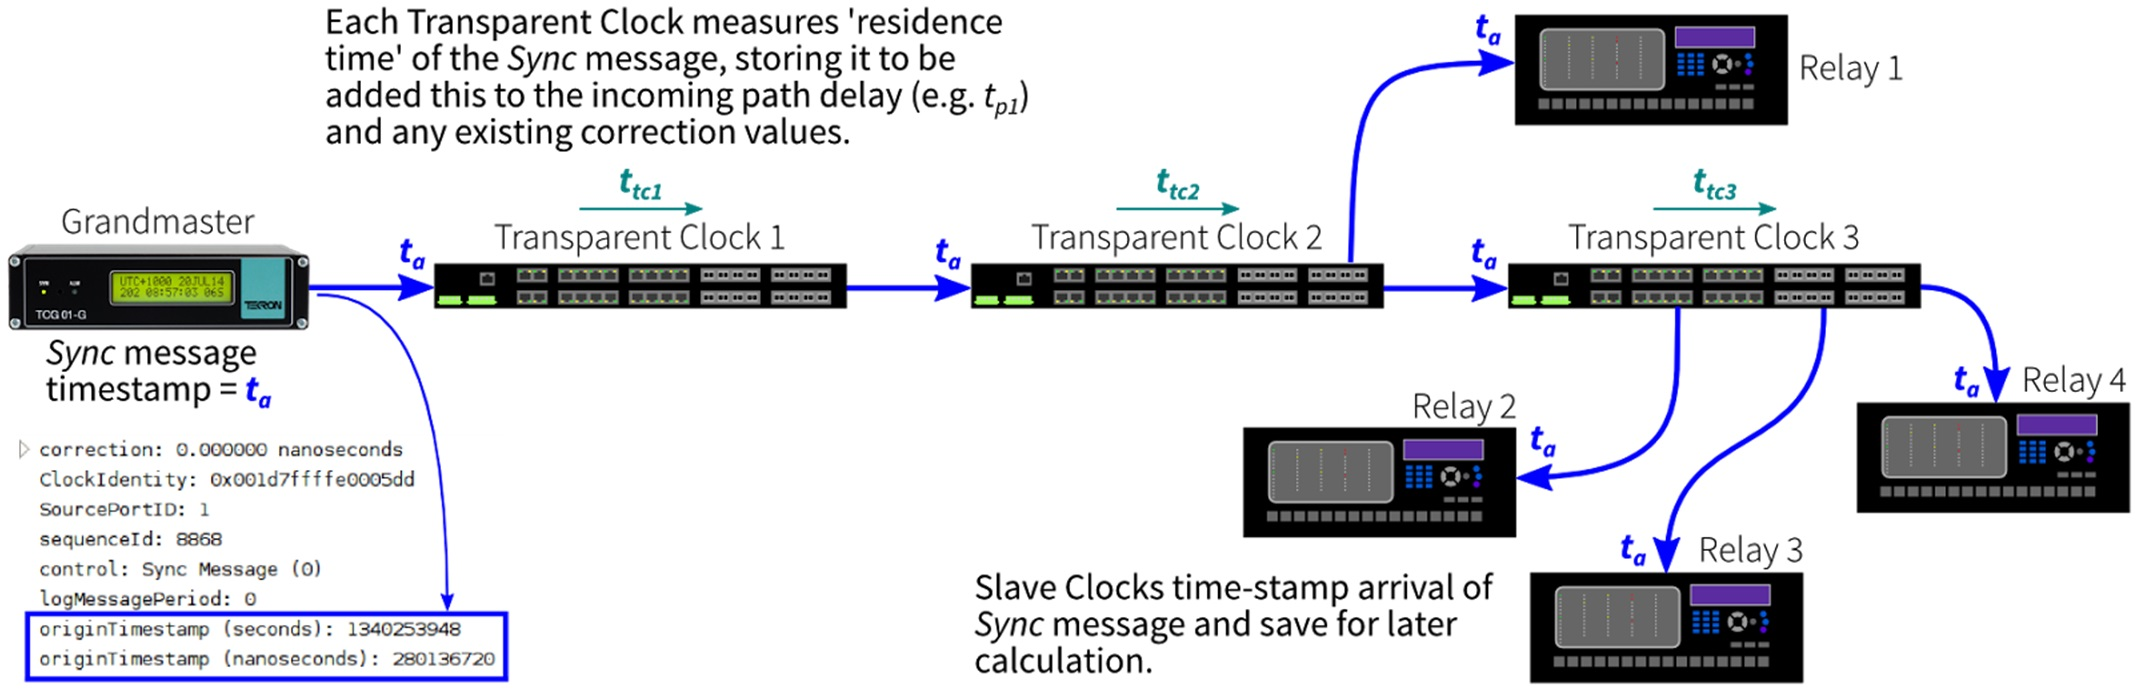 Figure 6: Graphical representation of Sync message travelling through a PTP network.